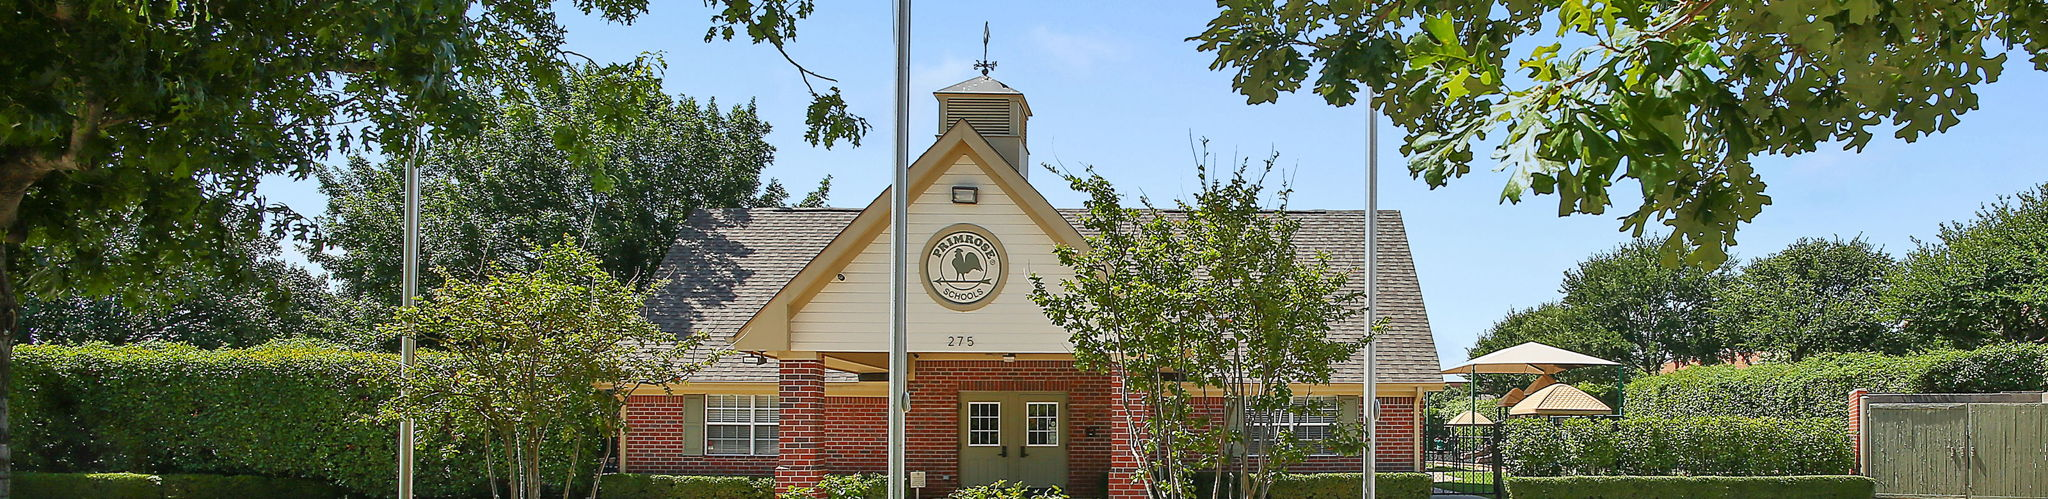 Exterior of a Primrose School of Coppell